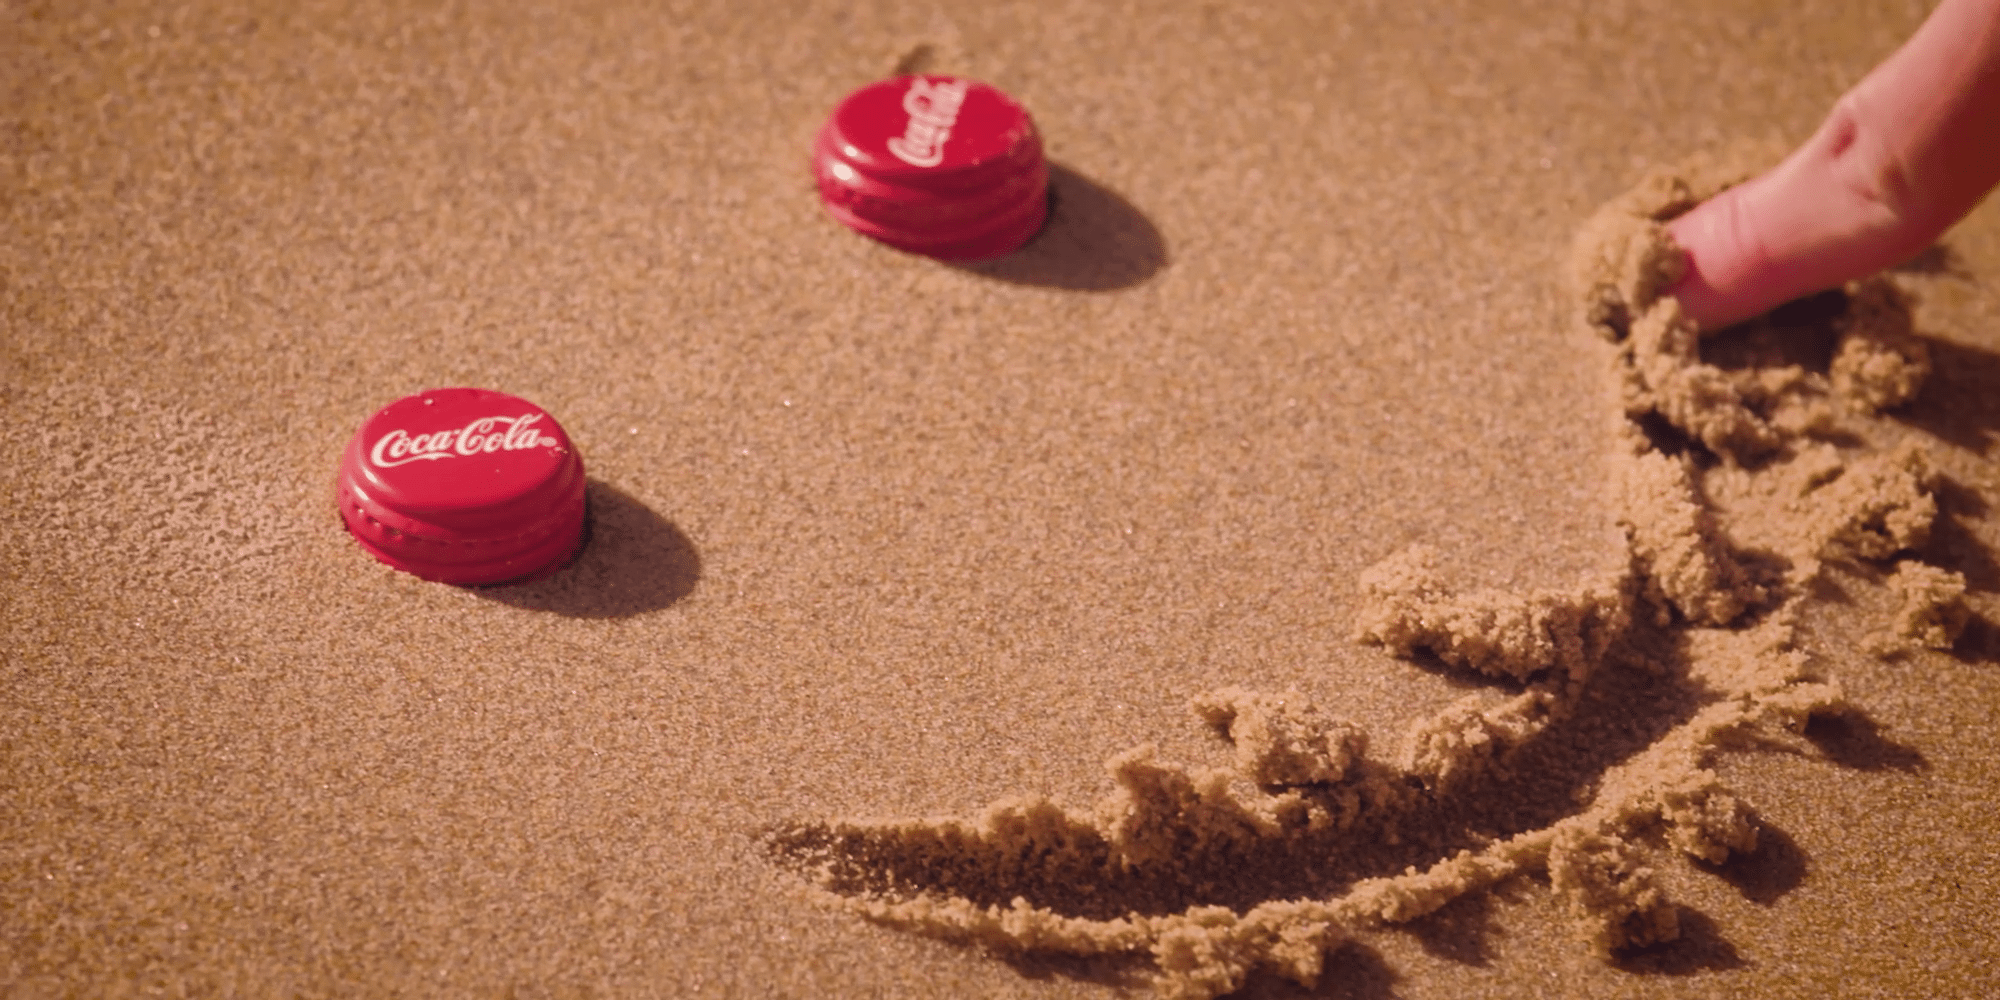 An image from a coke commercial video: Two bottle caps in the sand with a smiling mouth drawn beneath.